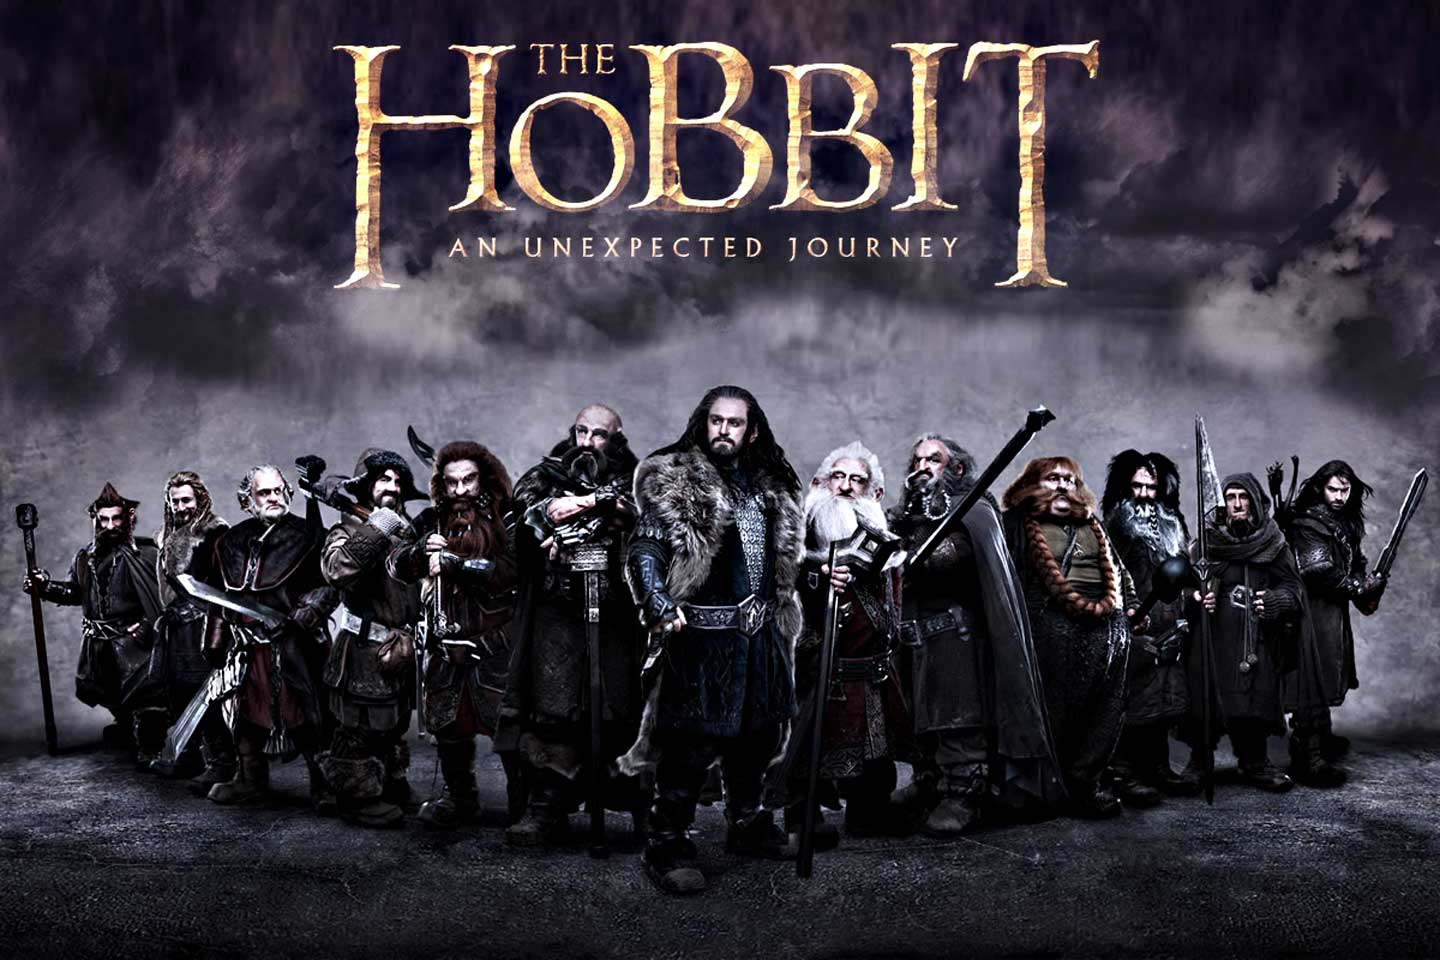 http://4.bp.blogspot.com/-O2tXqdvnZ_c/T-htmrEXcSI/AAAAAAAADq4/5o64AiteG6s/s1600/the_hobbit_movie_wallpaper.jpg